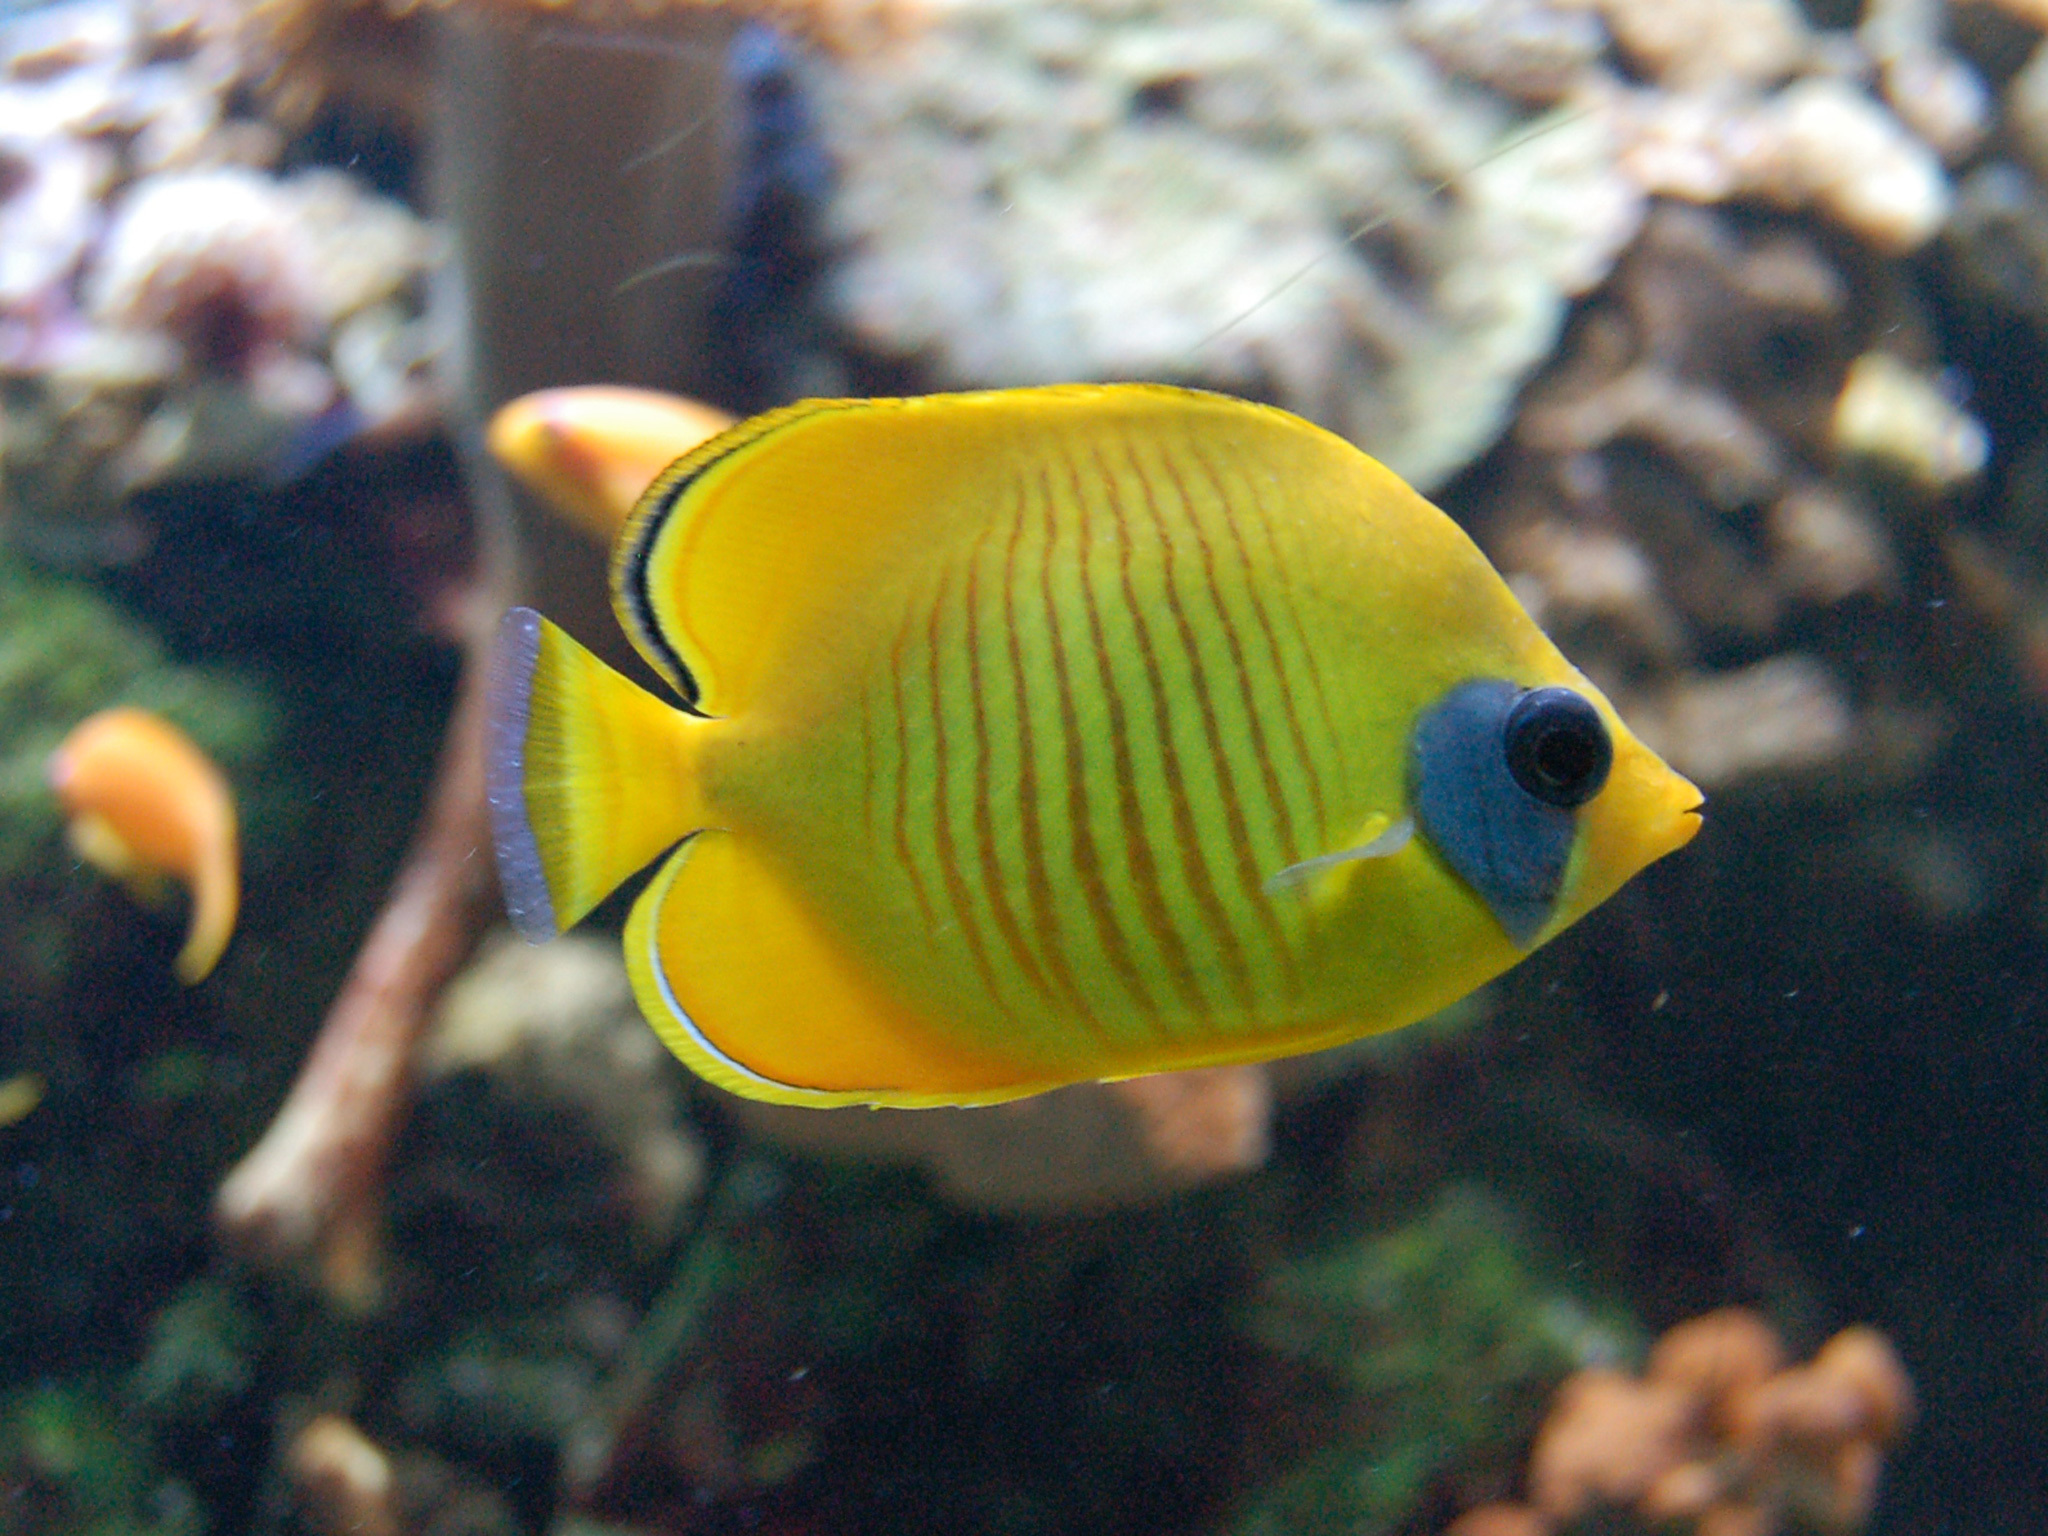 A fish at the Palais de la Porte Dorée aquarium